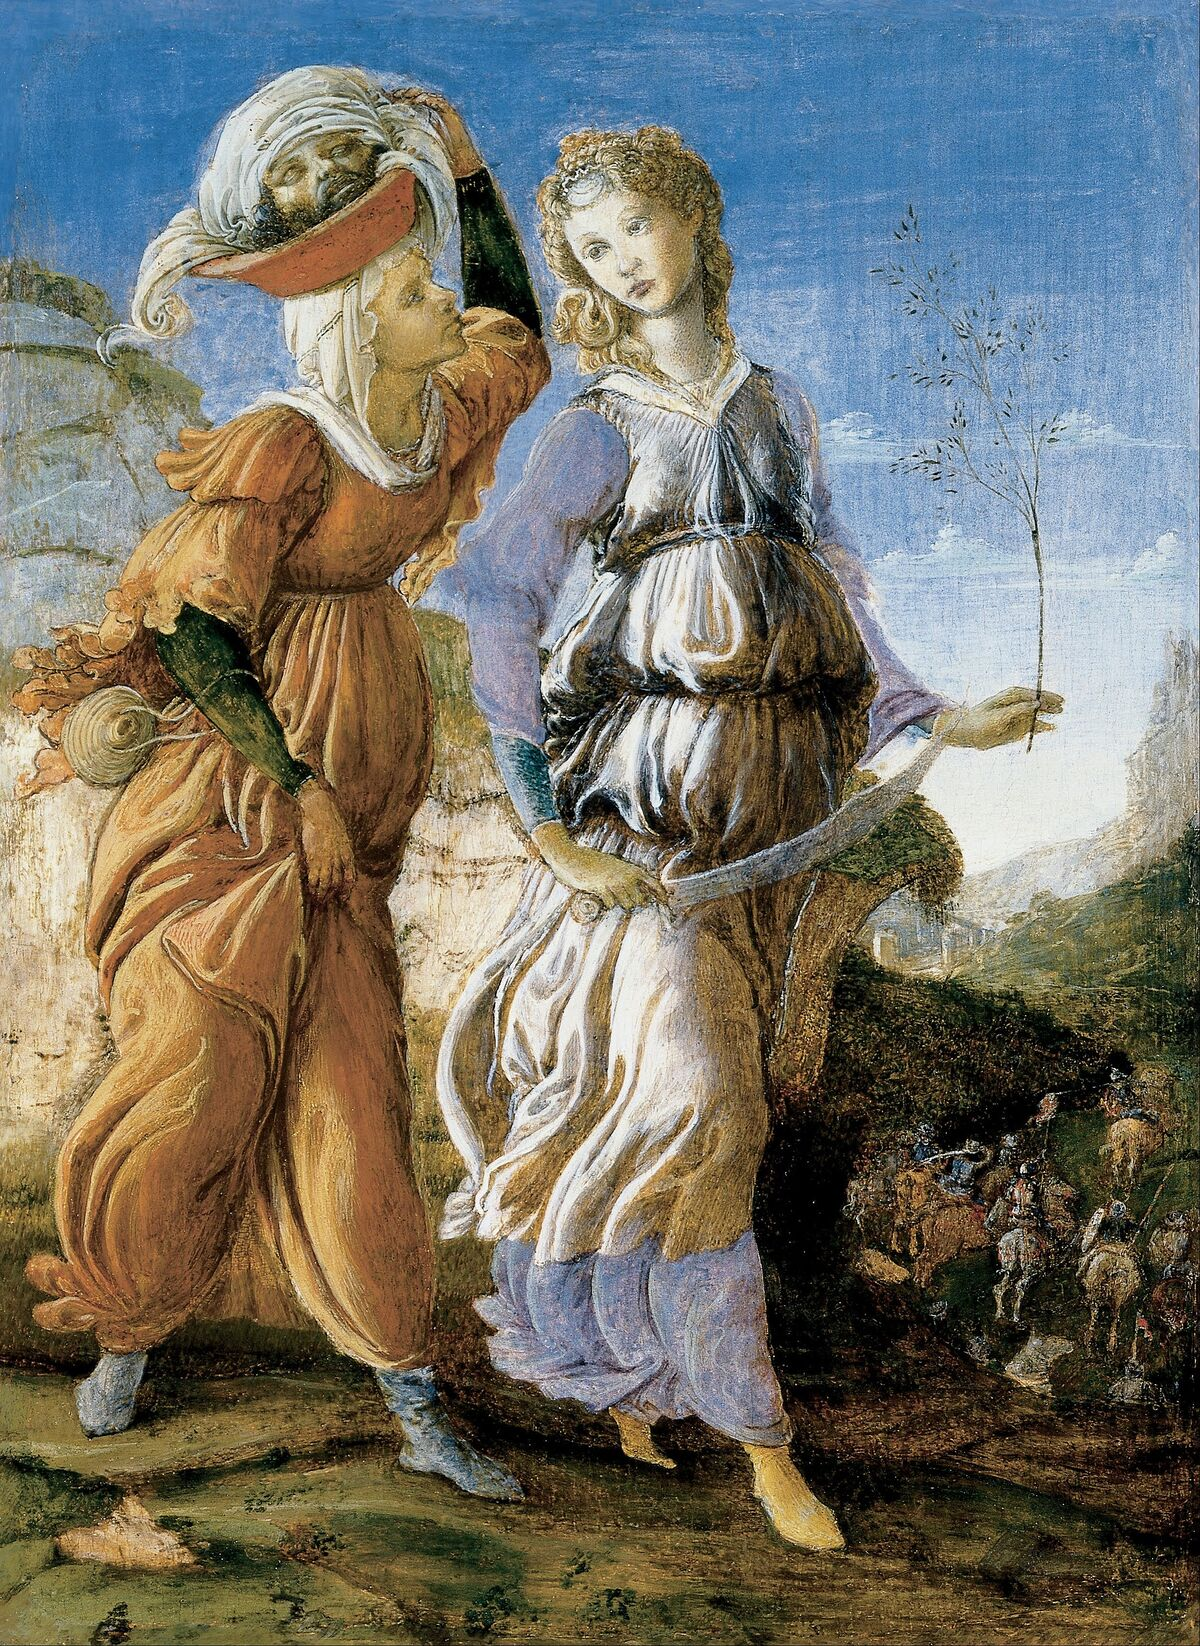 Botticelli,  Judith with the Head of Holofernes,  ca. 1470. Image via Wikimedia Commons.